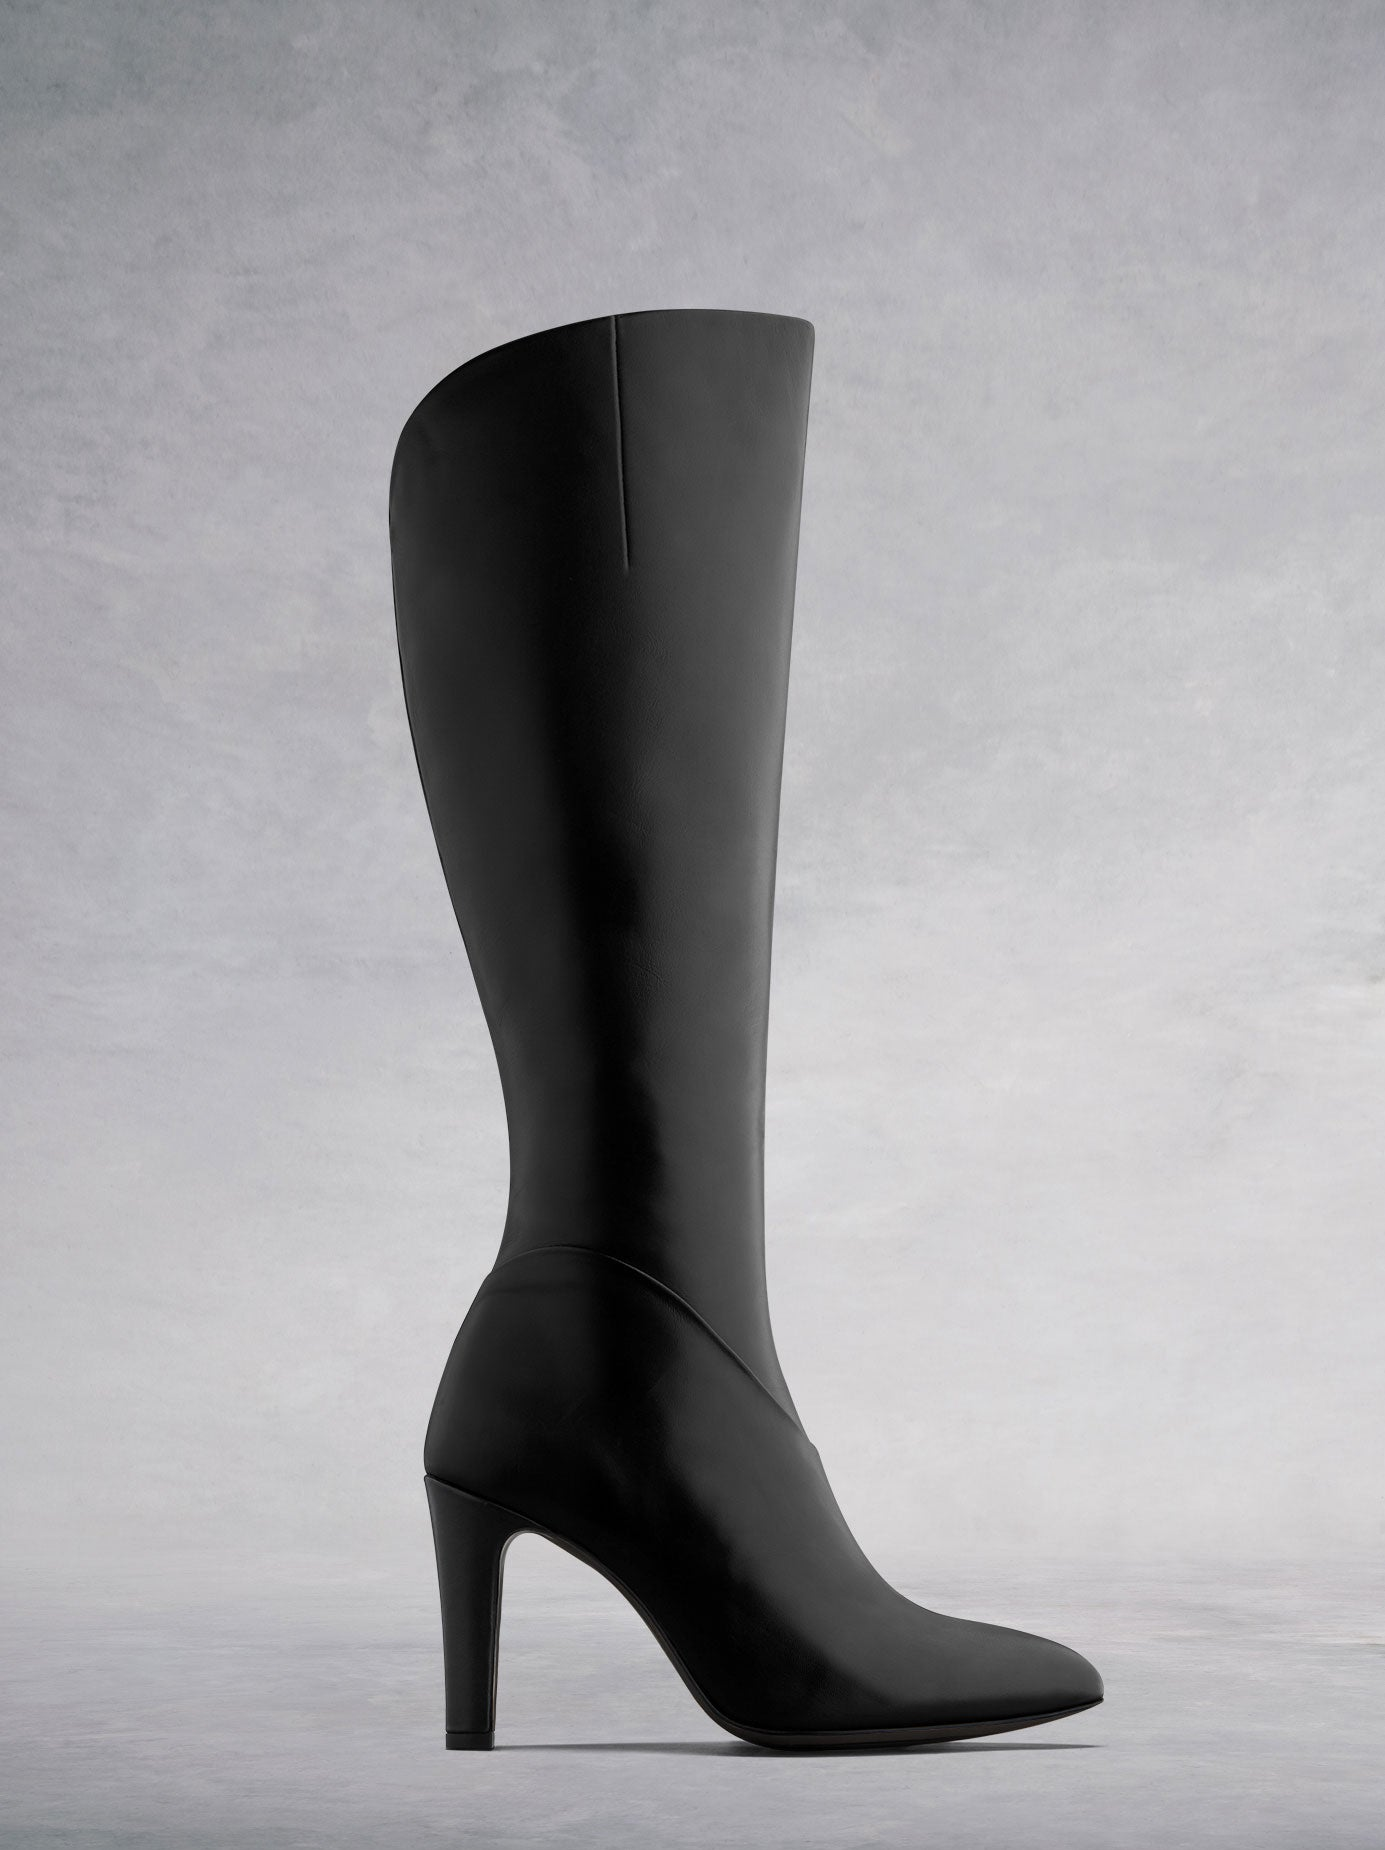 The Kinver, the stylish high heeled knee high boot in soft black leather.